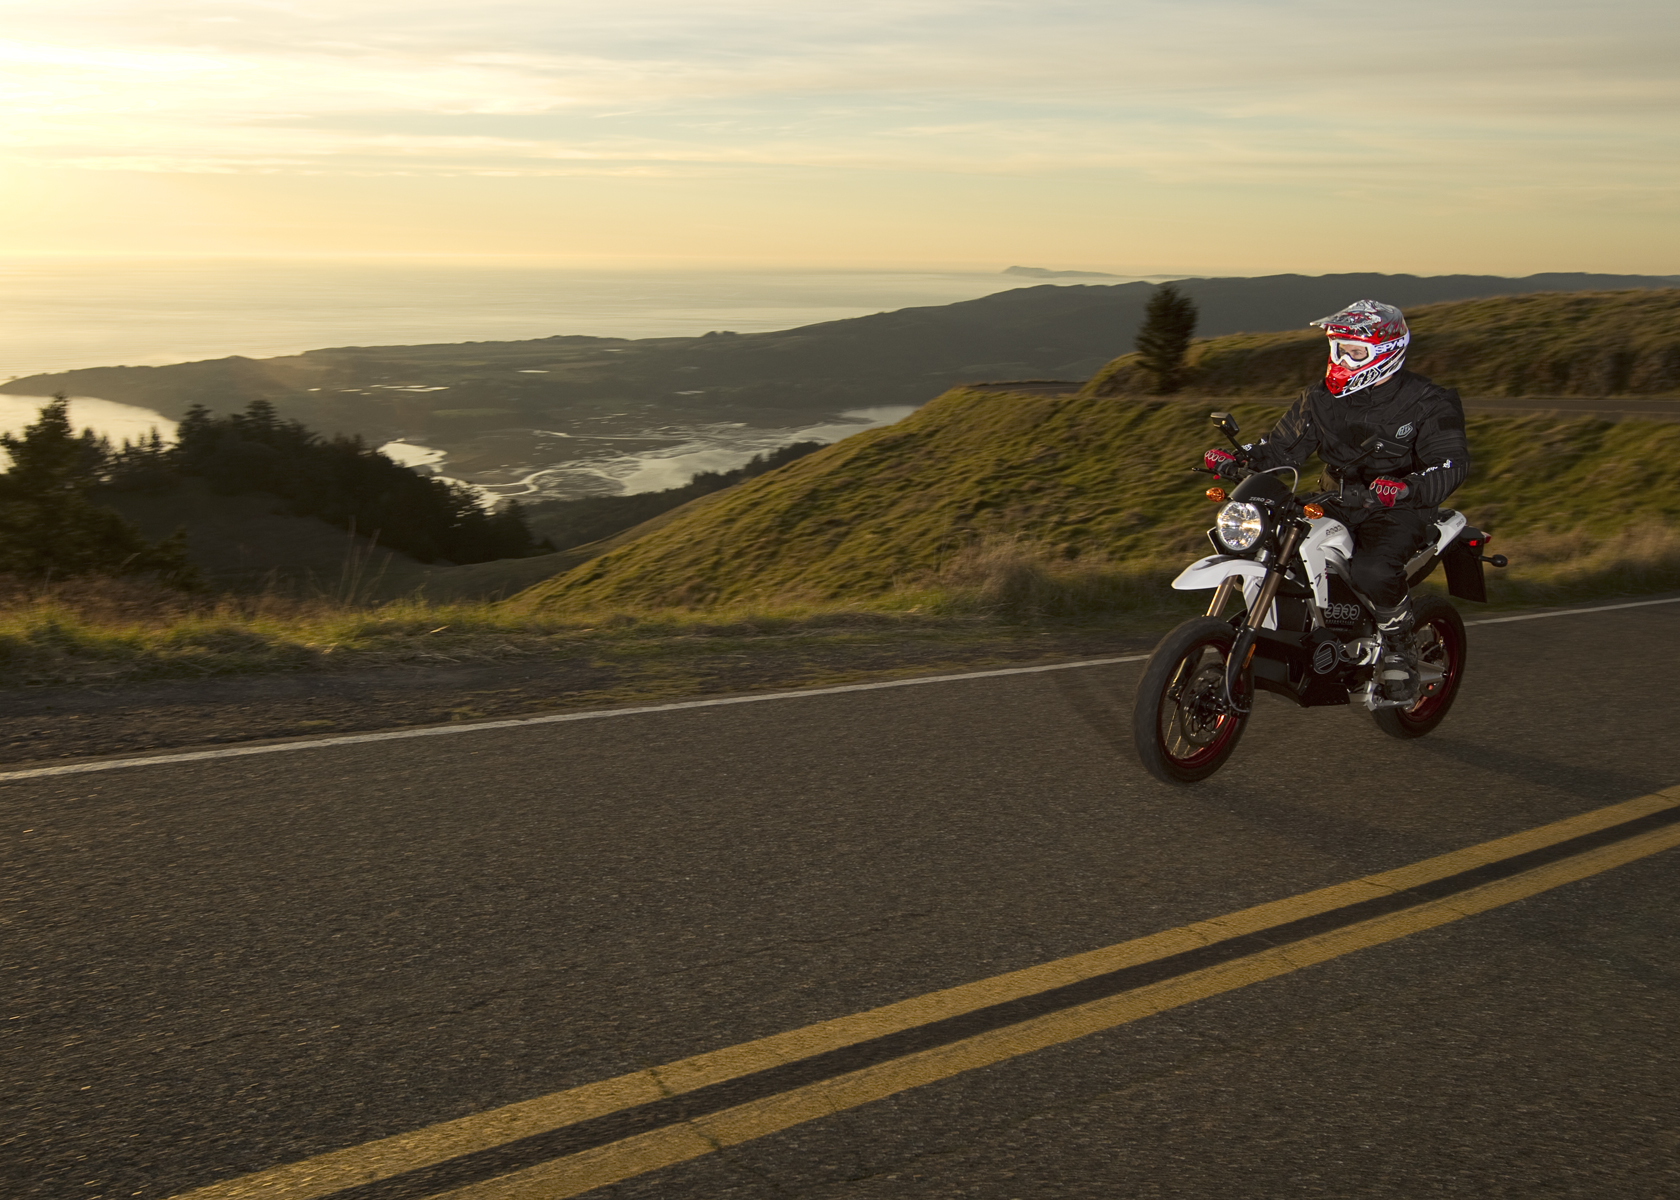 2011 Zero DS Electric Motorcycle: Cruising, Pacific Ocean View